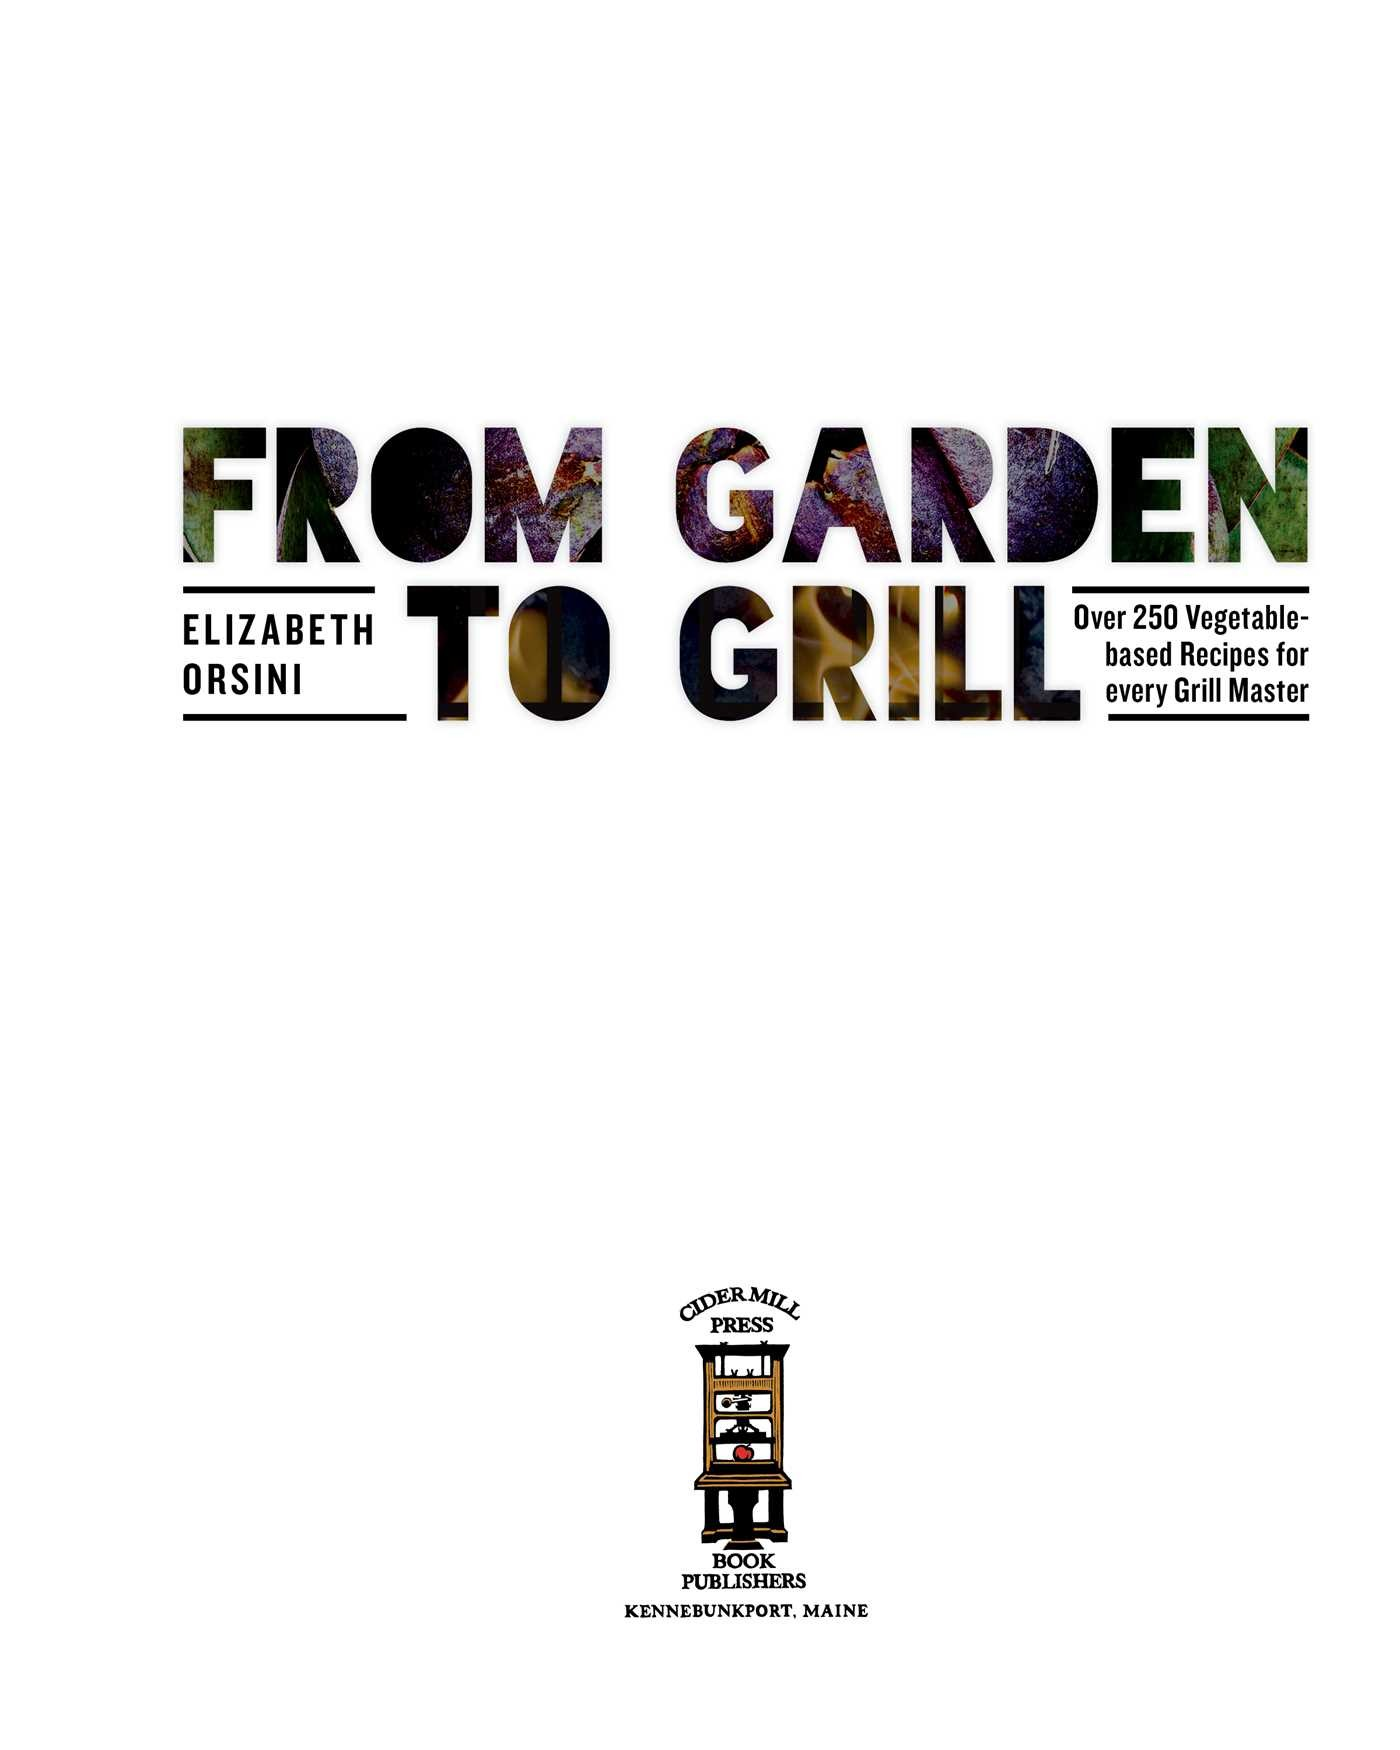 From garden to grill 9781604337051.in01